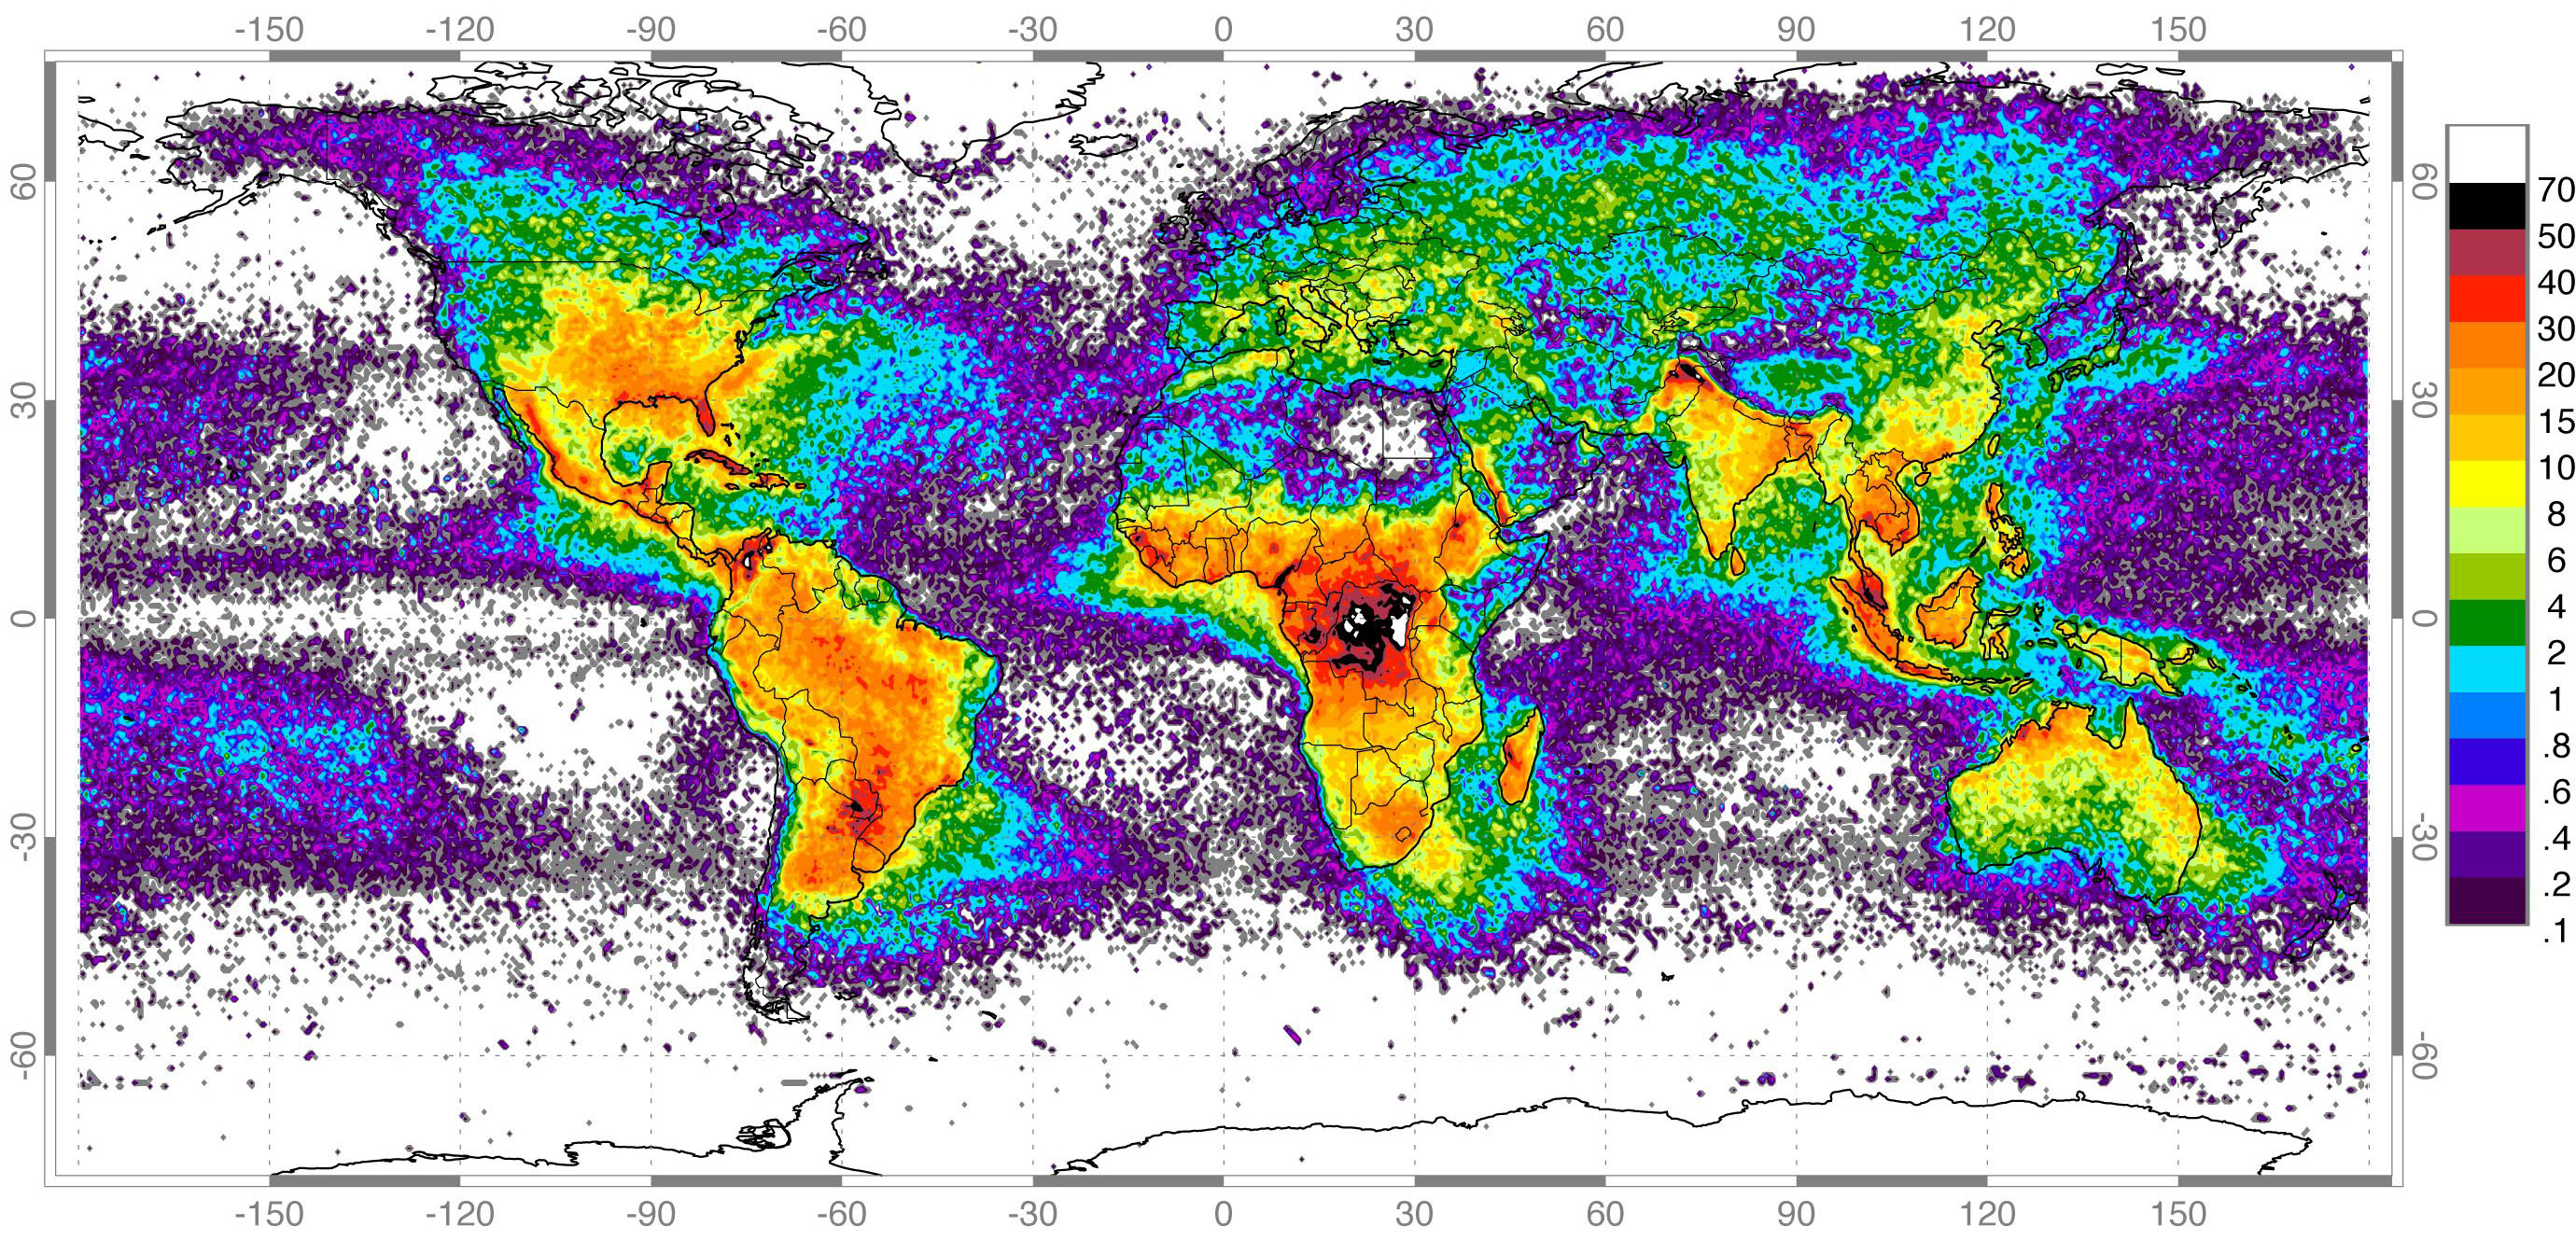 Summary of global lightning detected with the LIS instrument